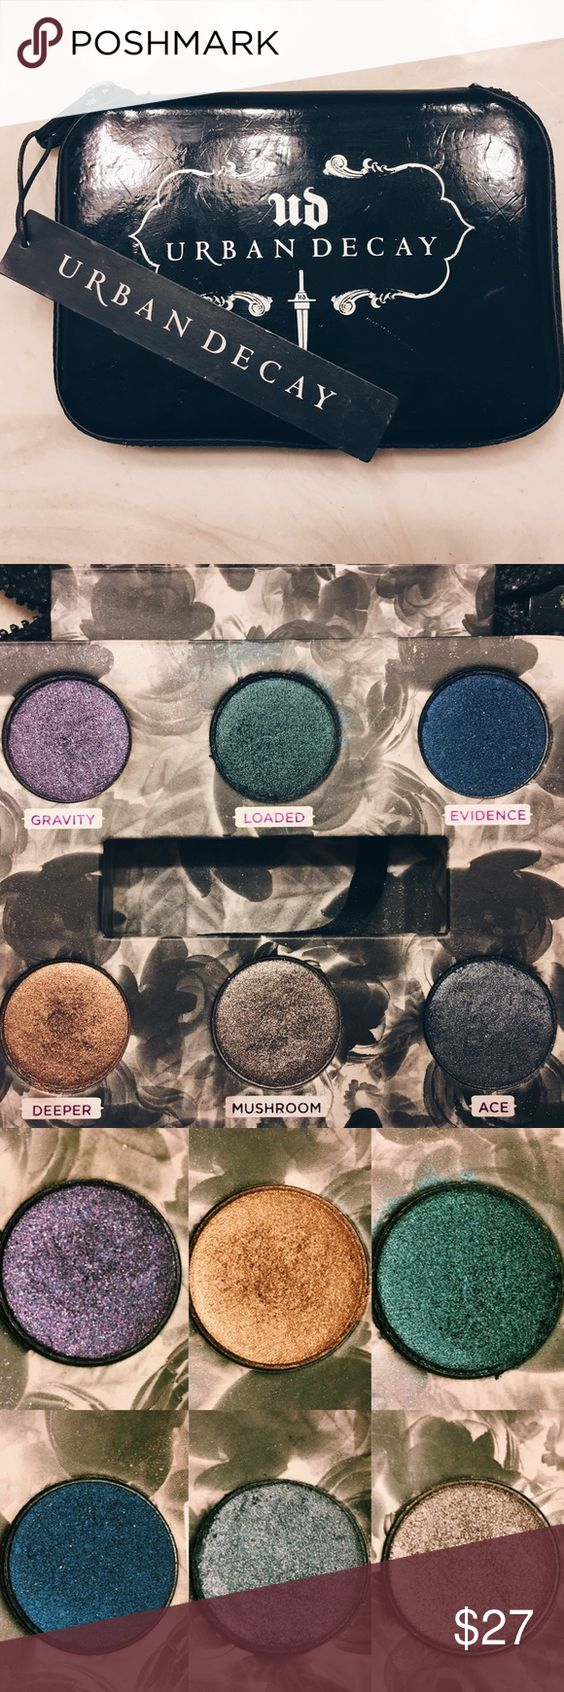 Urban Decay 'Dangerous' Palette Eyeshadow This vibrant and pigmented eyeshadow palette is perfect for a night out! Never used because it was a gift - and, just because I prefer natural colors😊 I will accept offers! Urban Decay Makeup Eyeshadow